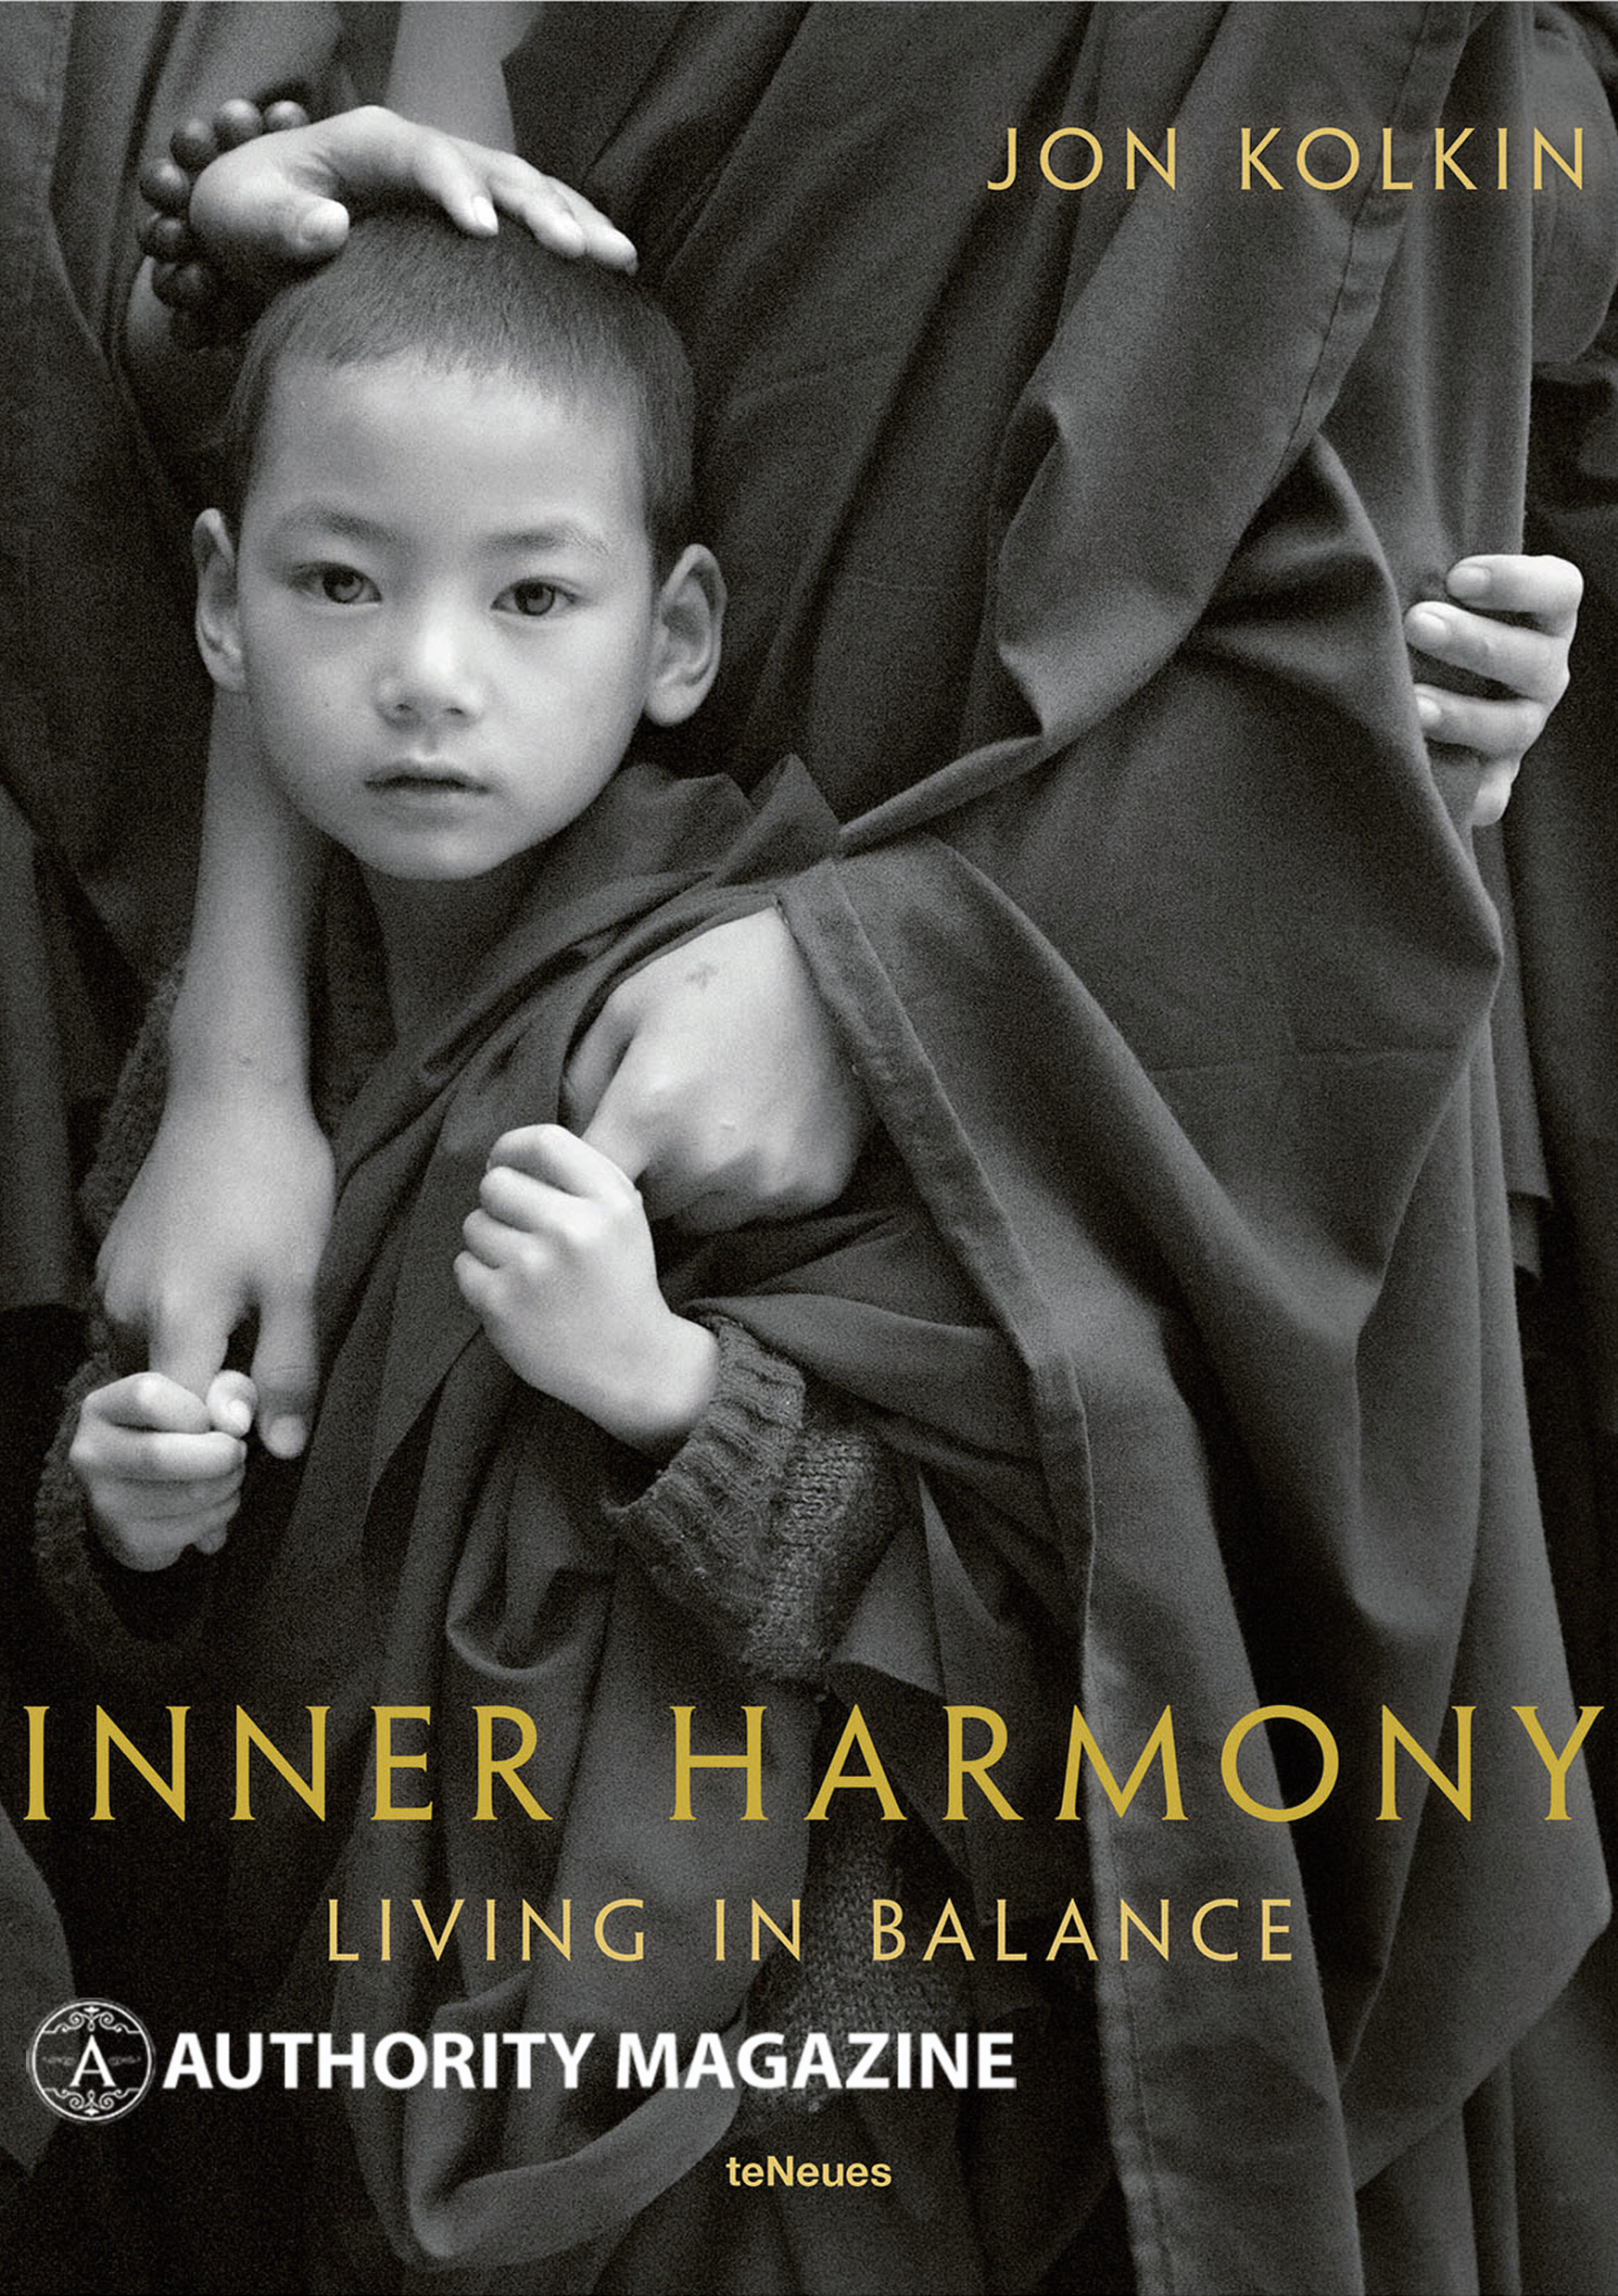 Inner Harmony: For 12 years, photographer Jon Kolkin travelled to Buddhist centres across Asia, capturing the everyday life of monks and nuns on camera.